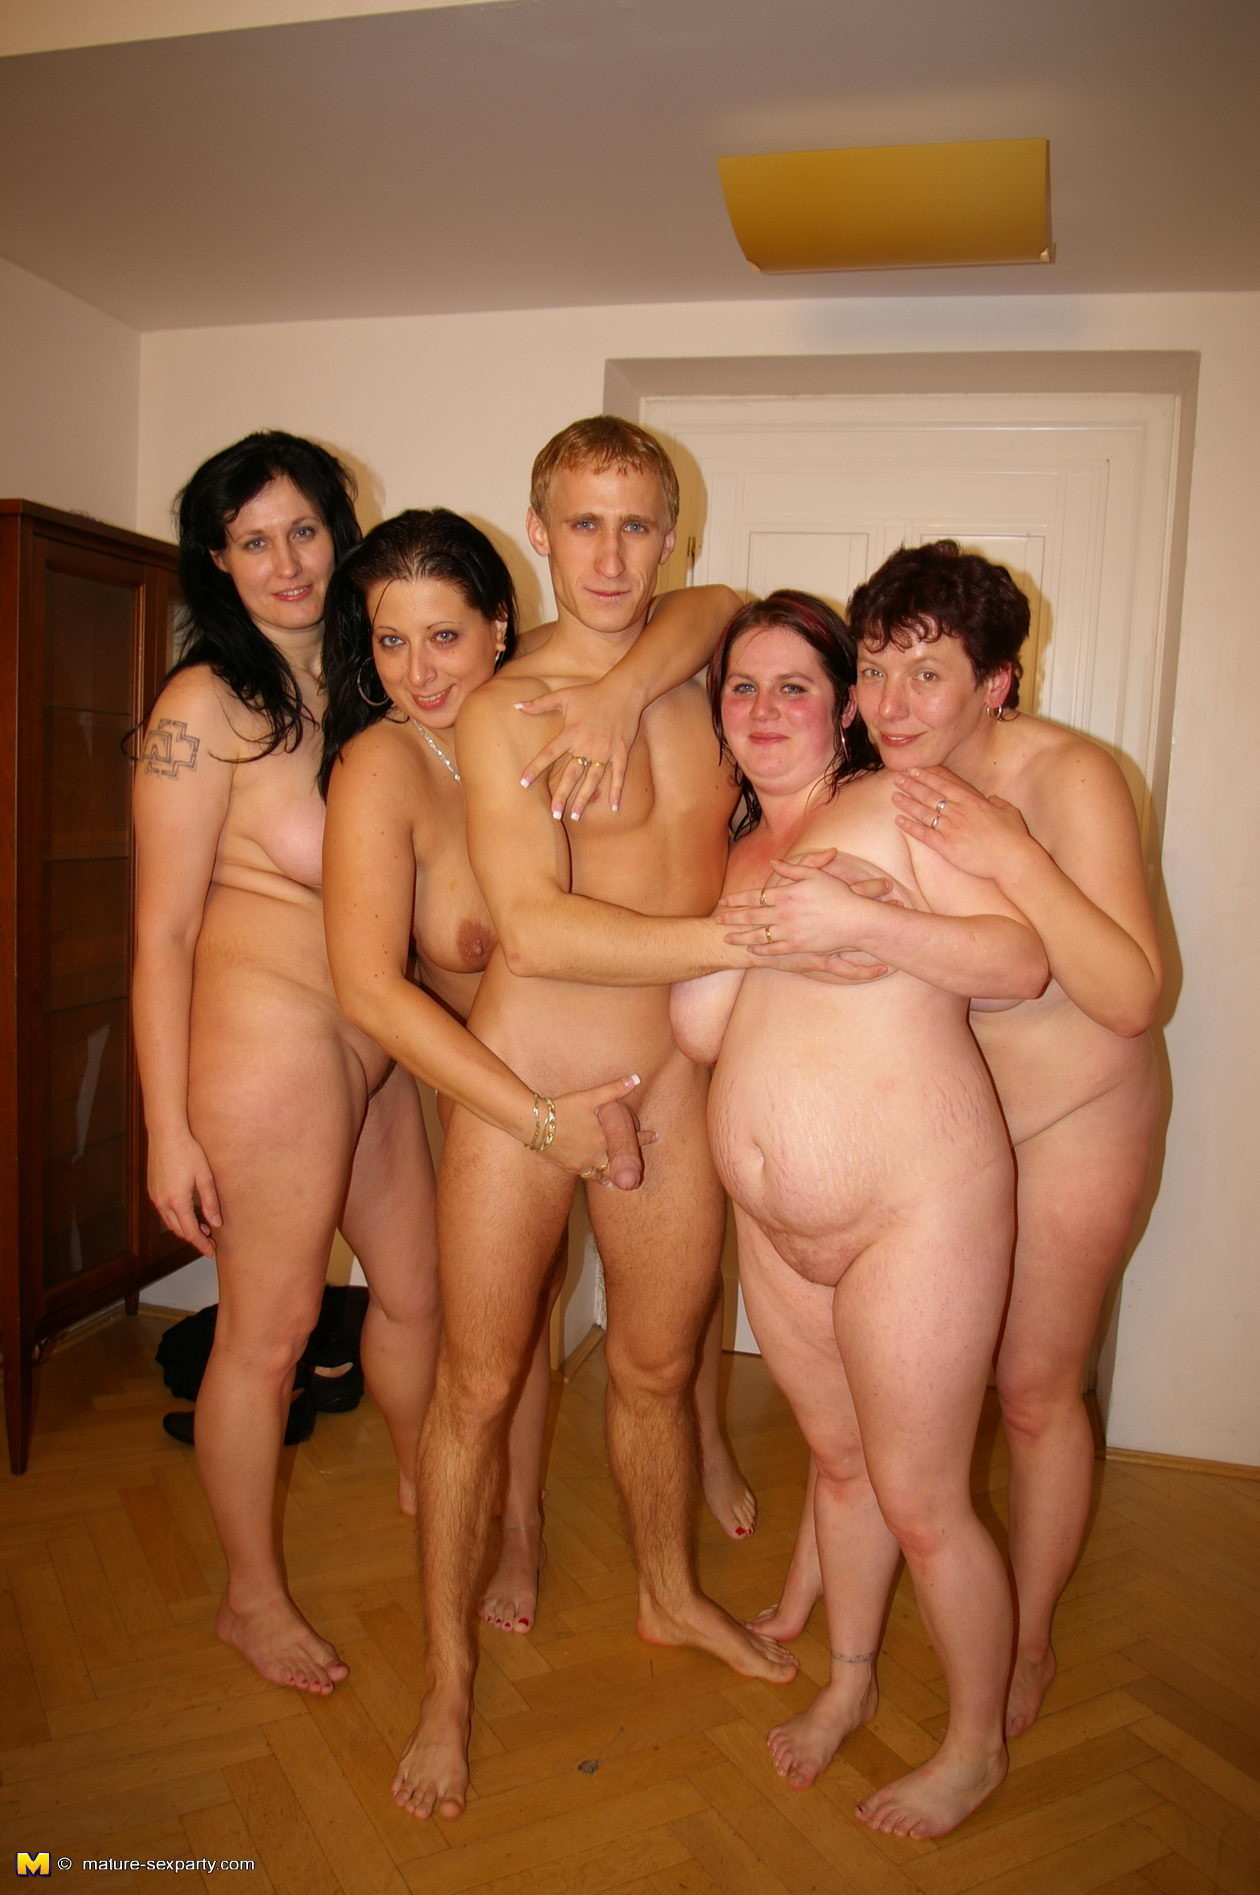 nudist families porn spicy nudist families nudist camp orgy